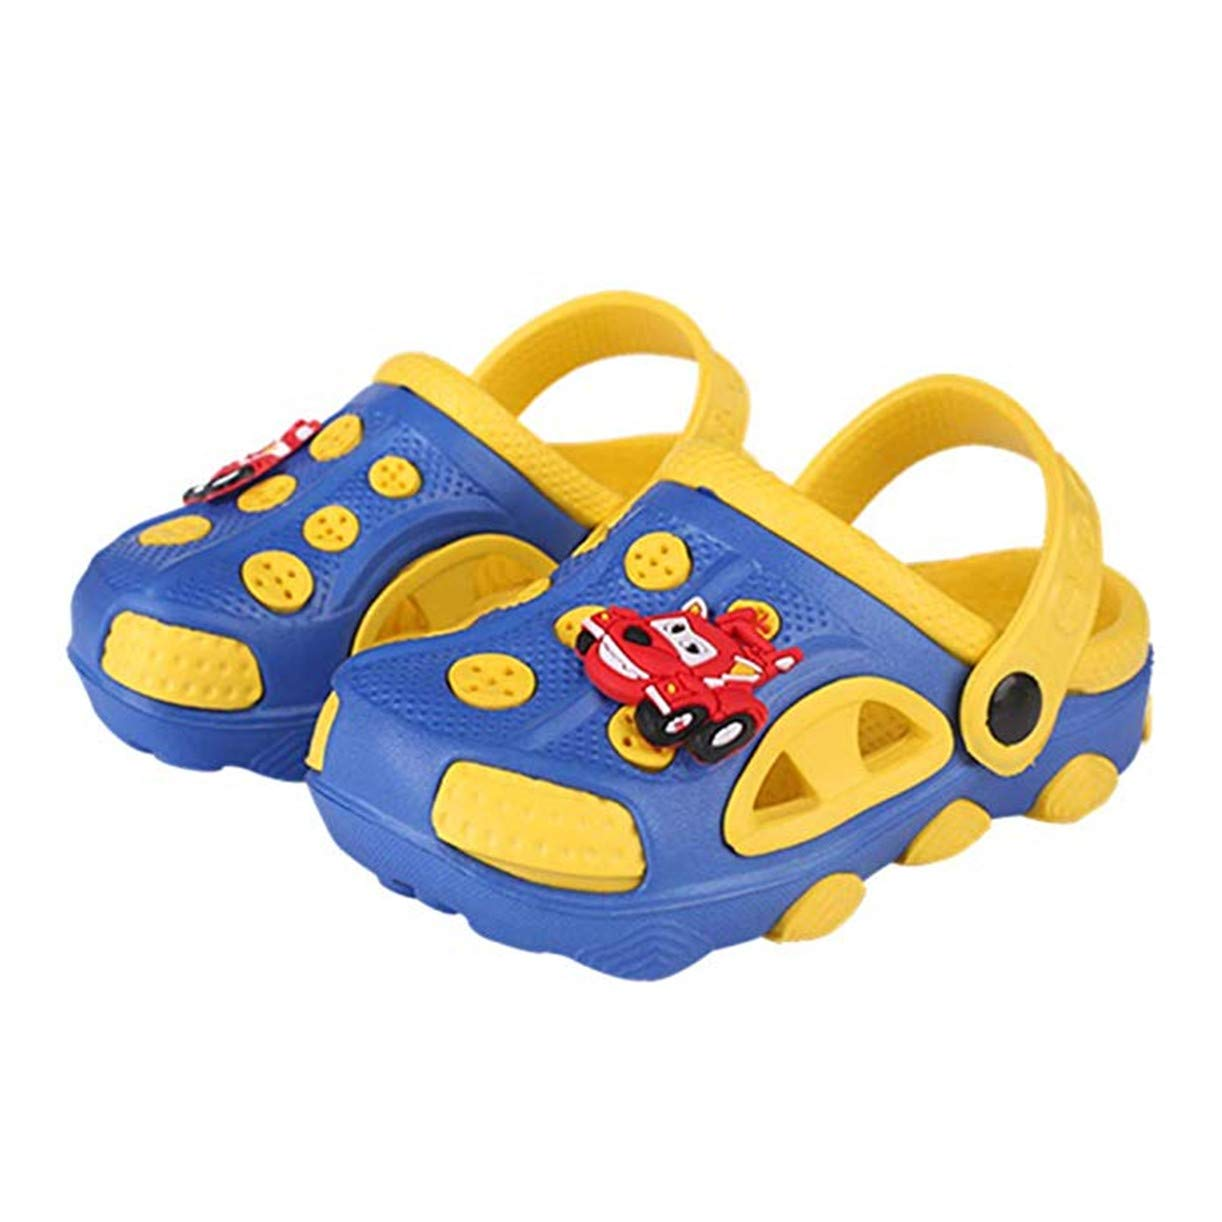 Fashion-zone Toddlers Cartoon Slides Sandals-Lightweight Garden Clogs Beach Sandals for Toddler Boys Girls (6 M US Toddler, Blue)